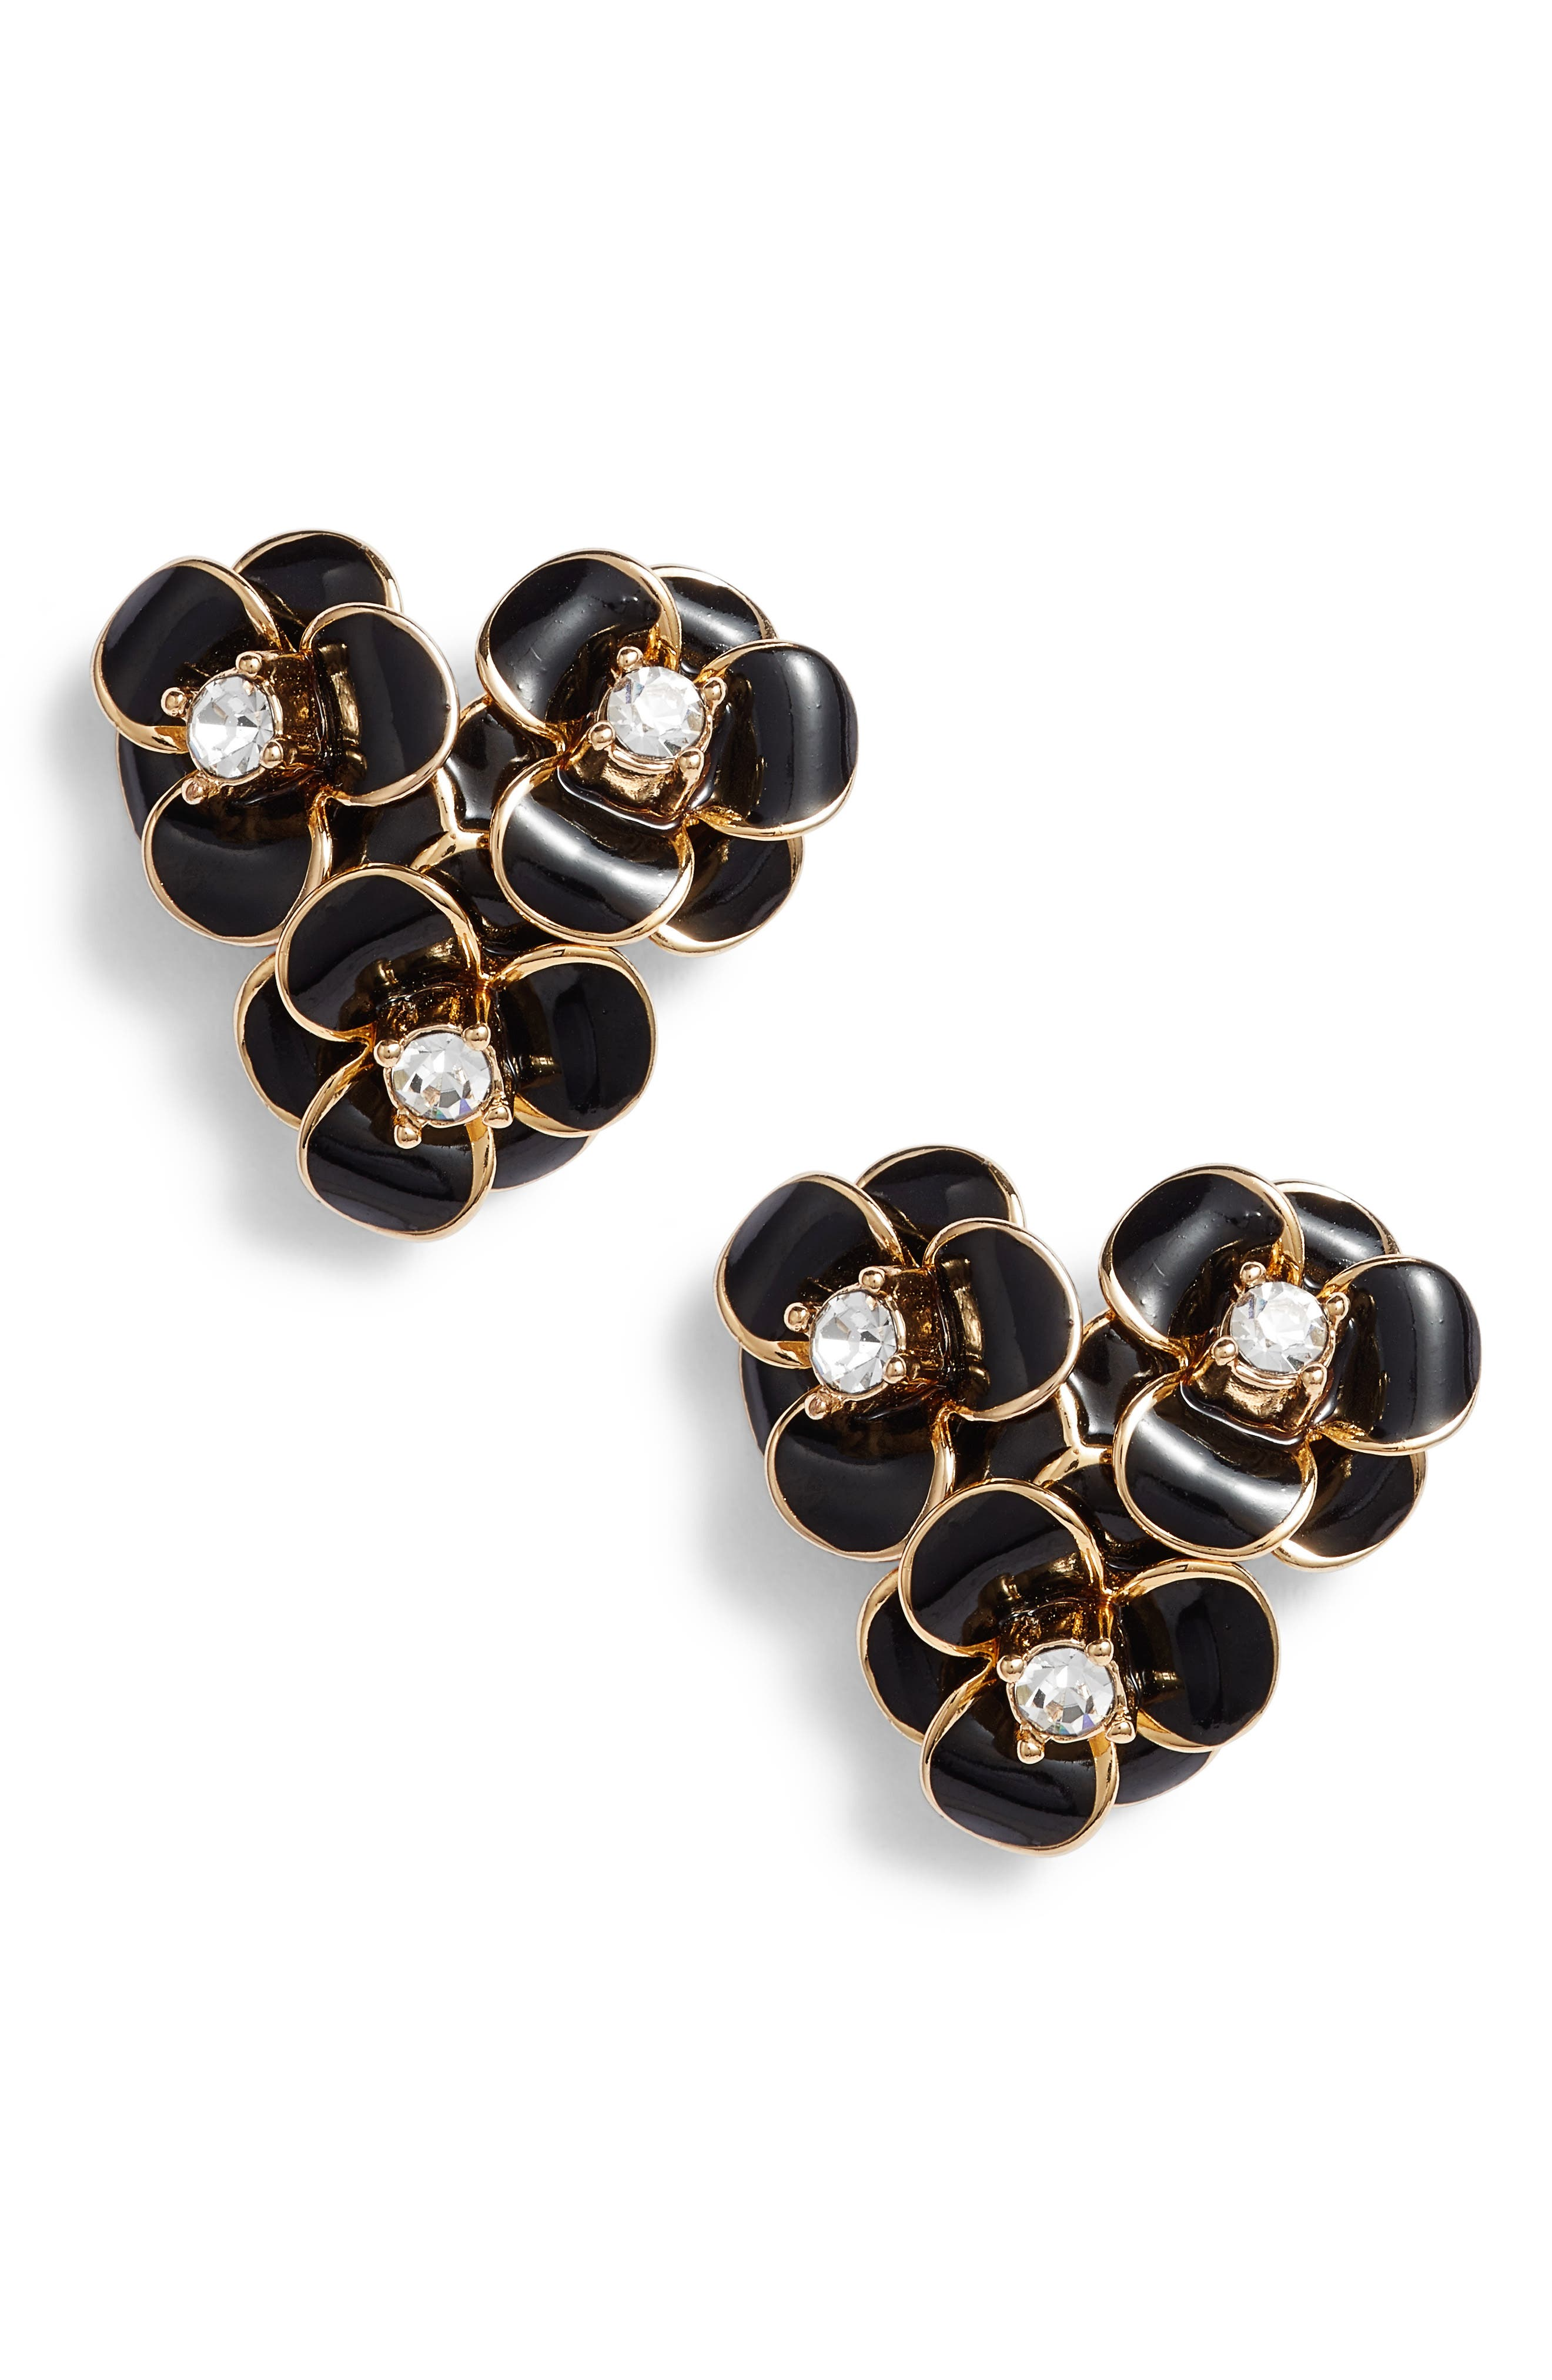 New Kate Spade Shine On Flower Cluster Crystal Stud Earrings Gold $58